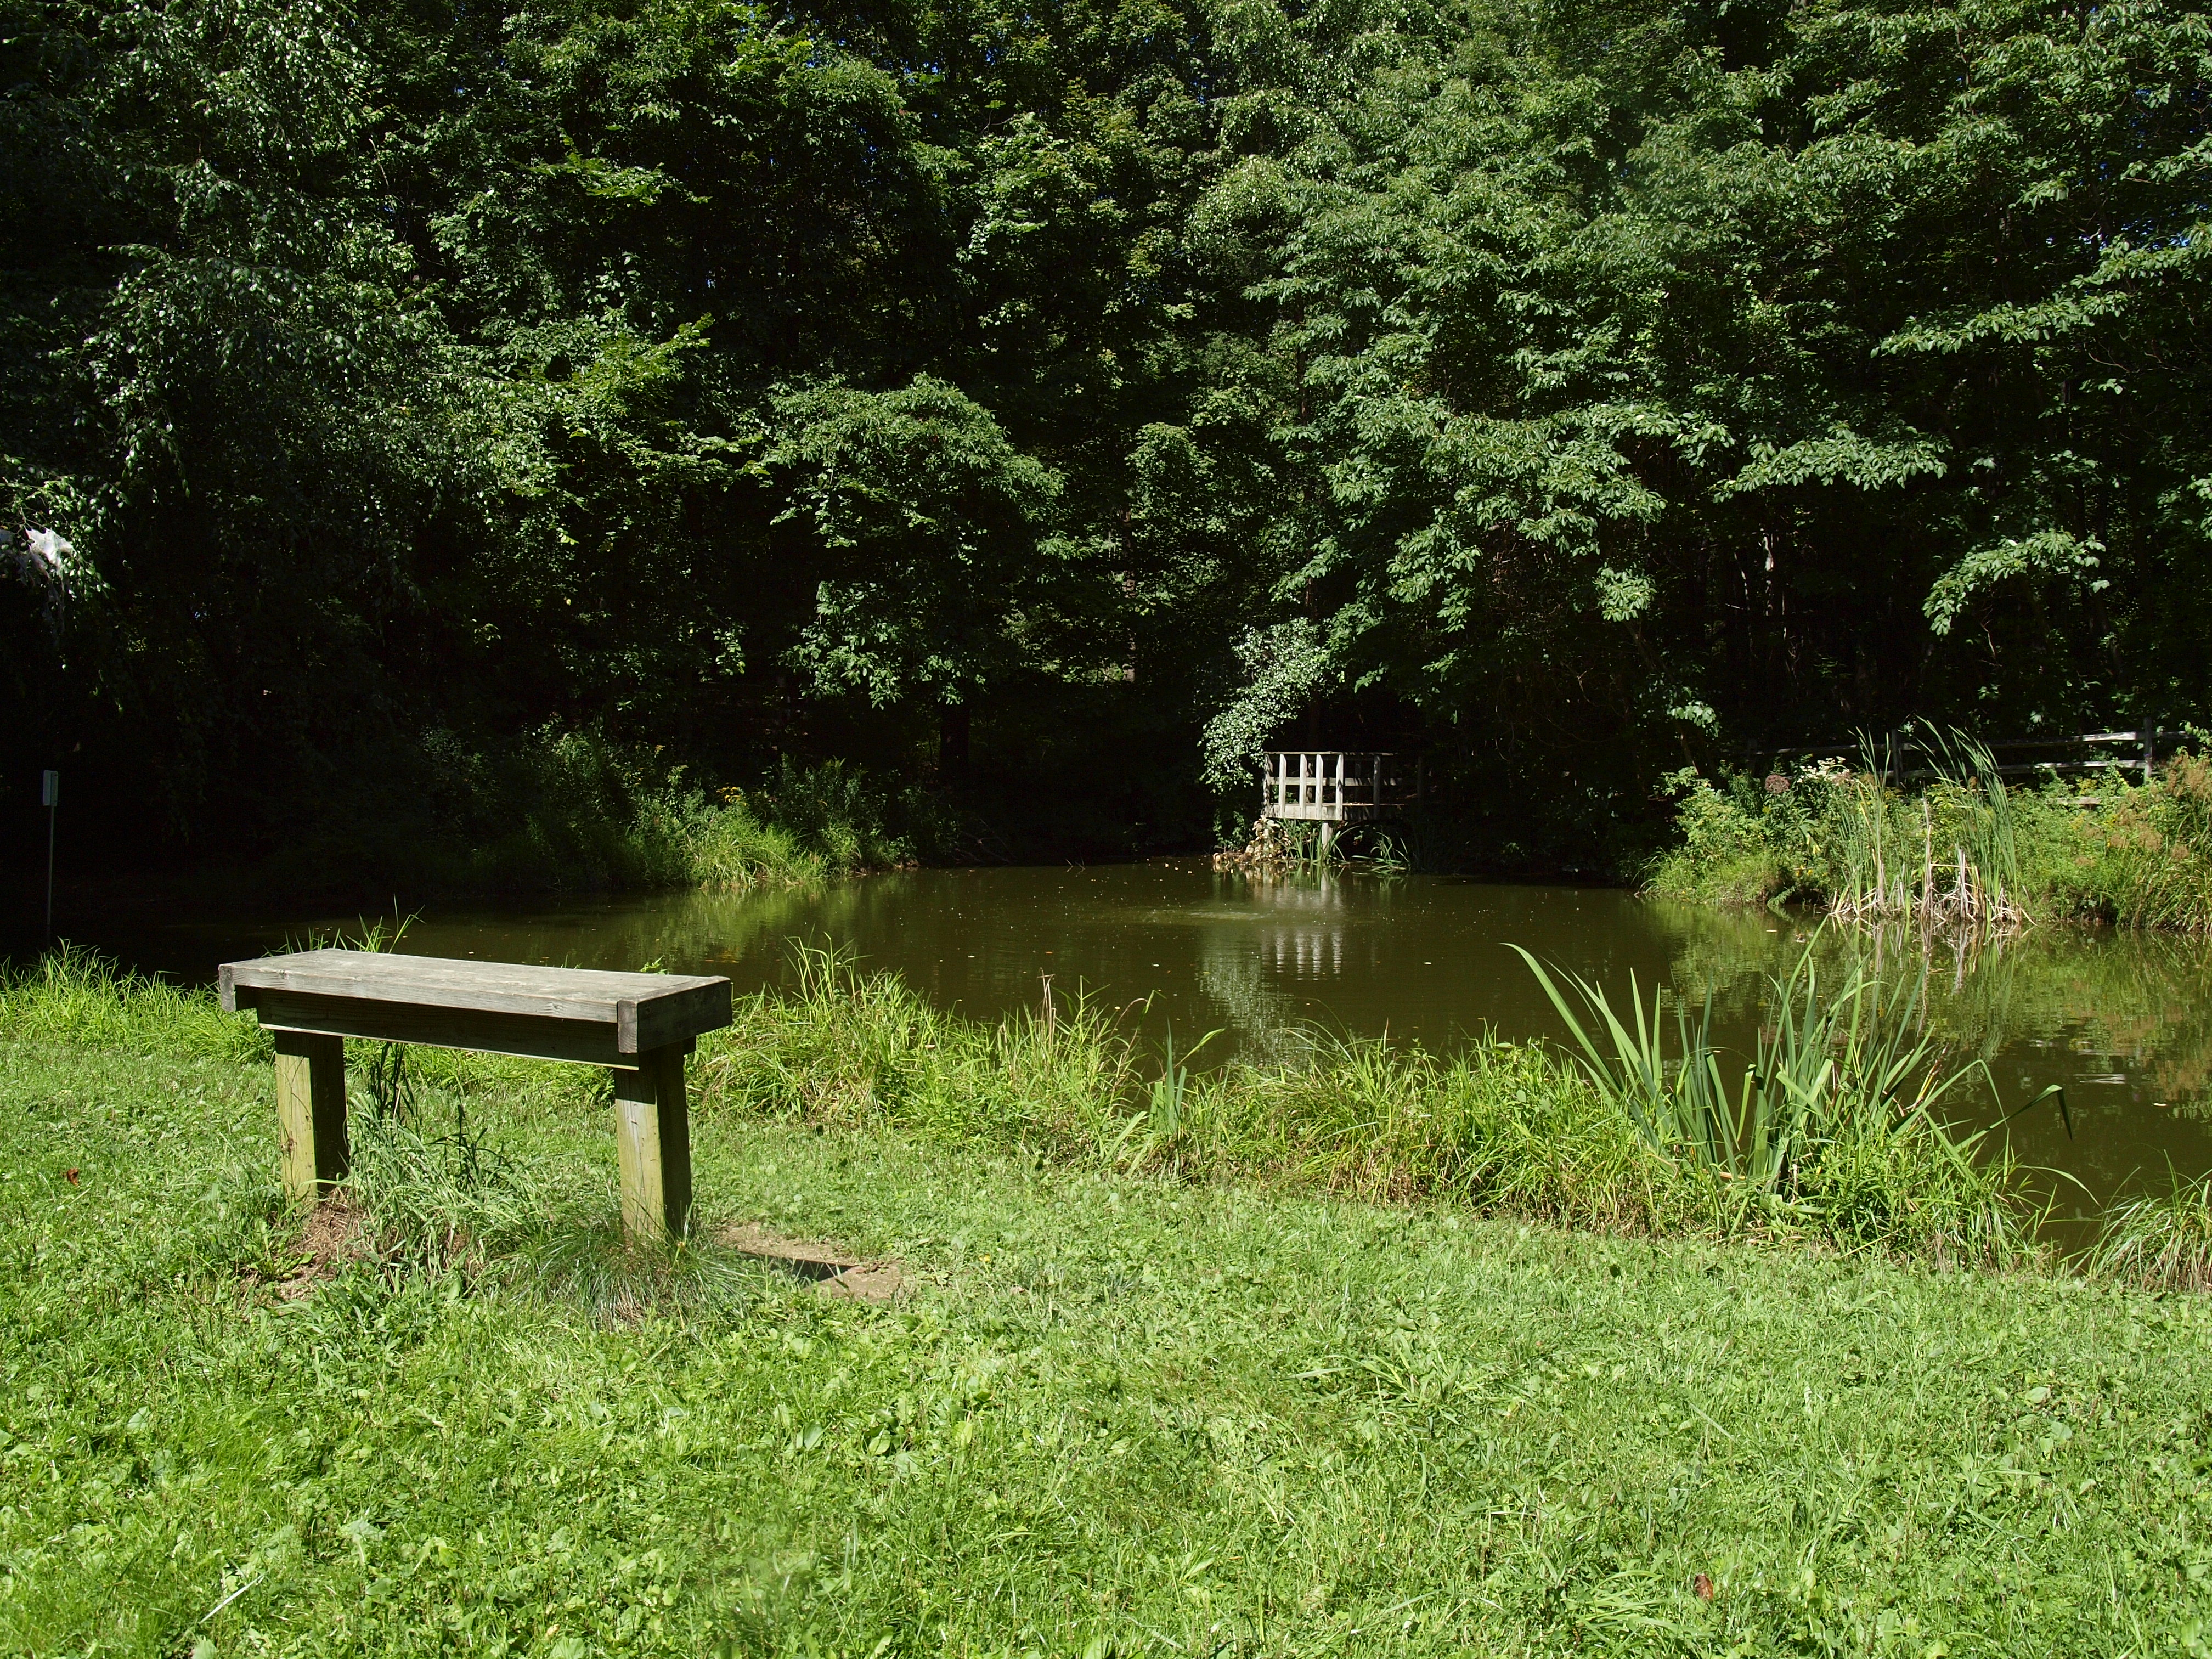 A bench in the grass overlooks a pond on the Nature Center property